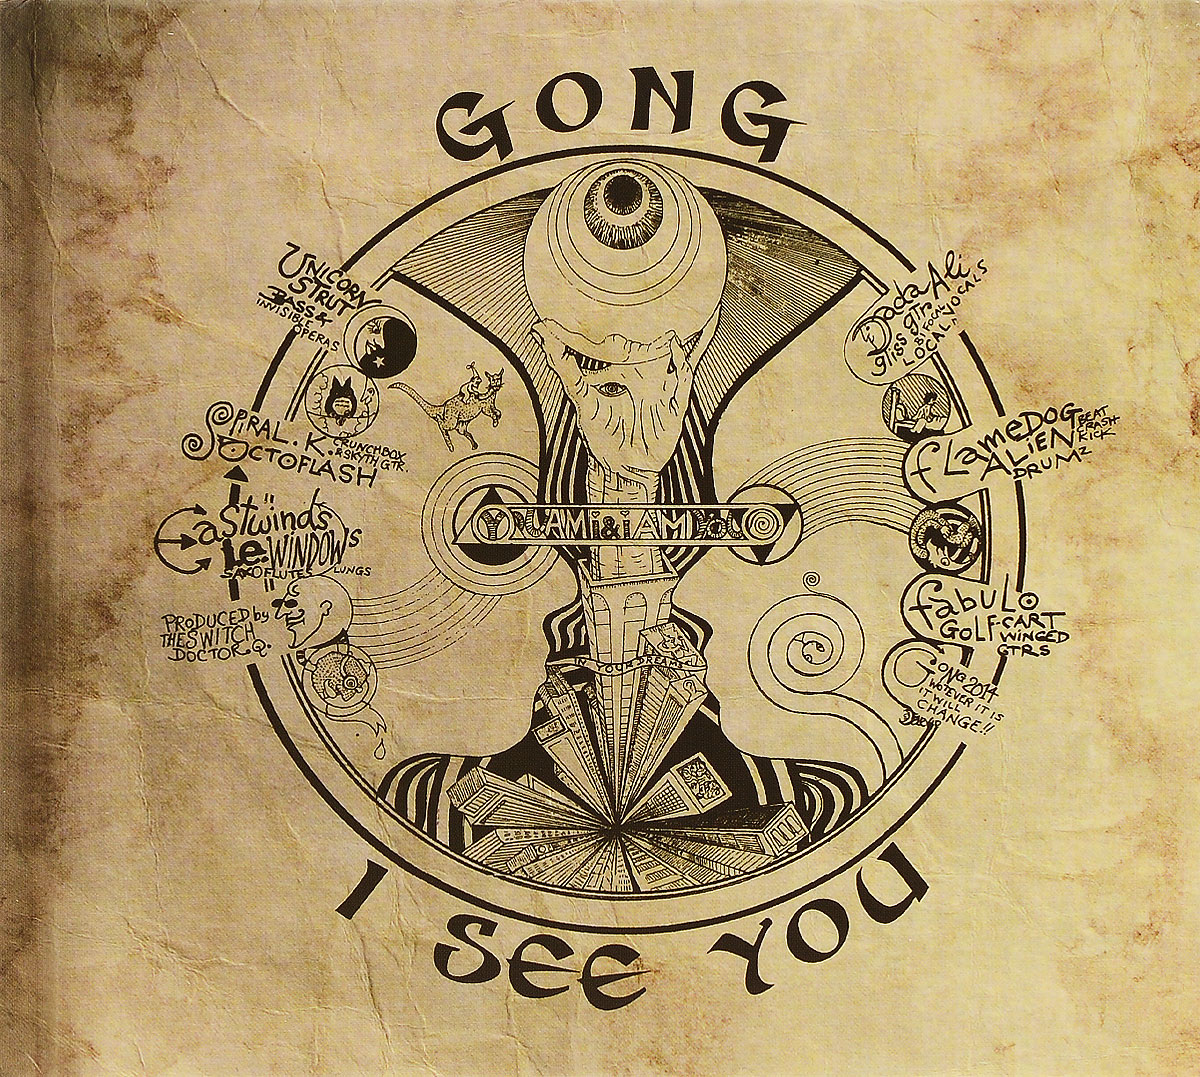 Gong Gong. I See You gong show 2018 04 01t18 00